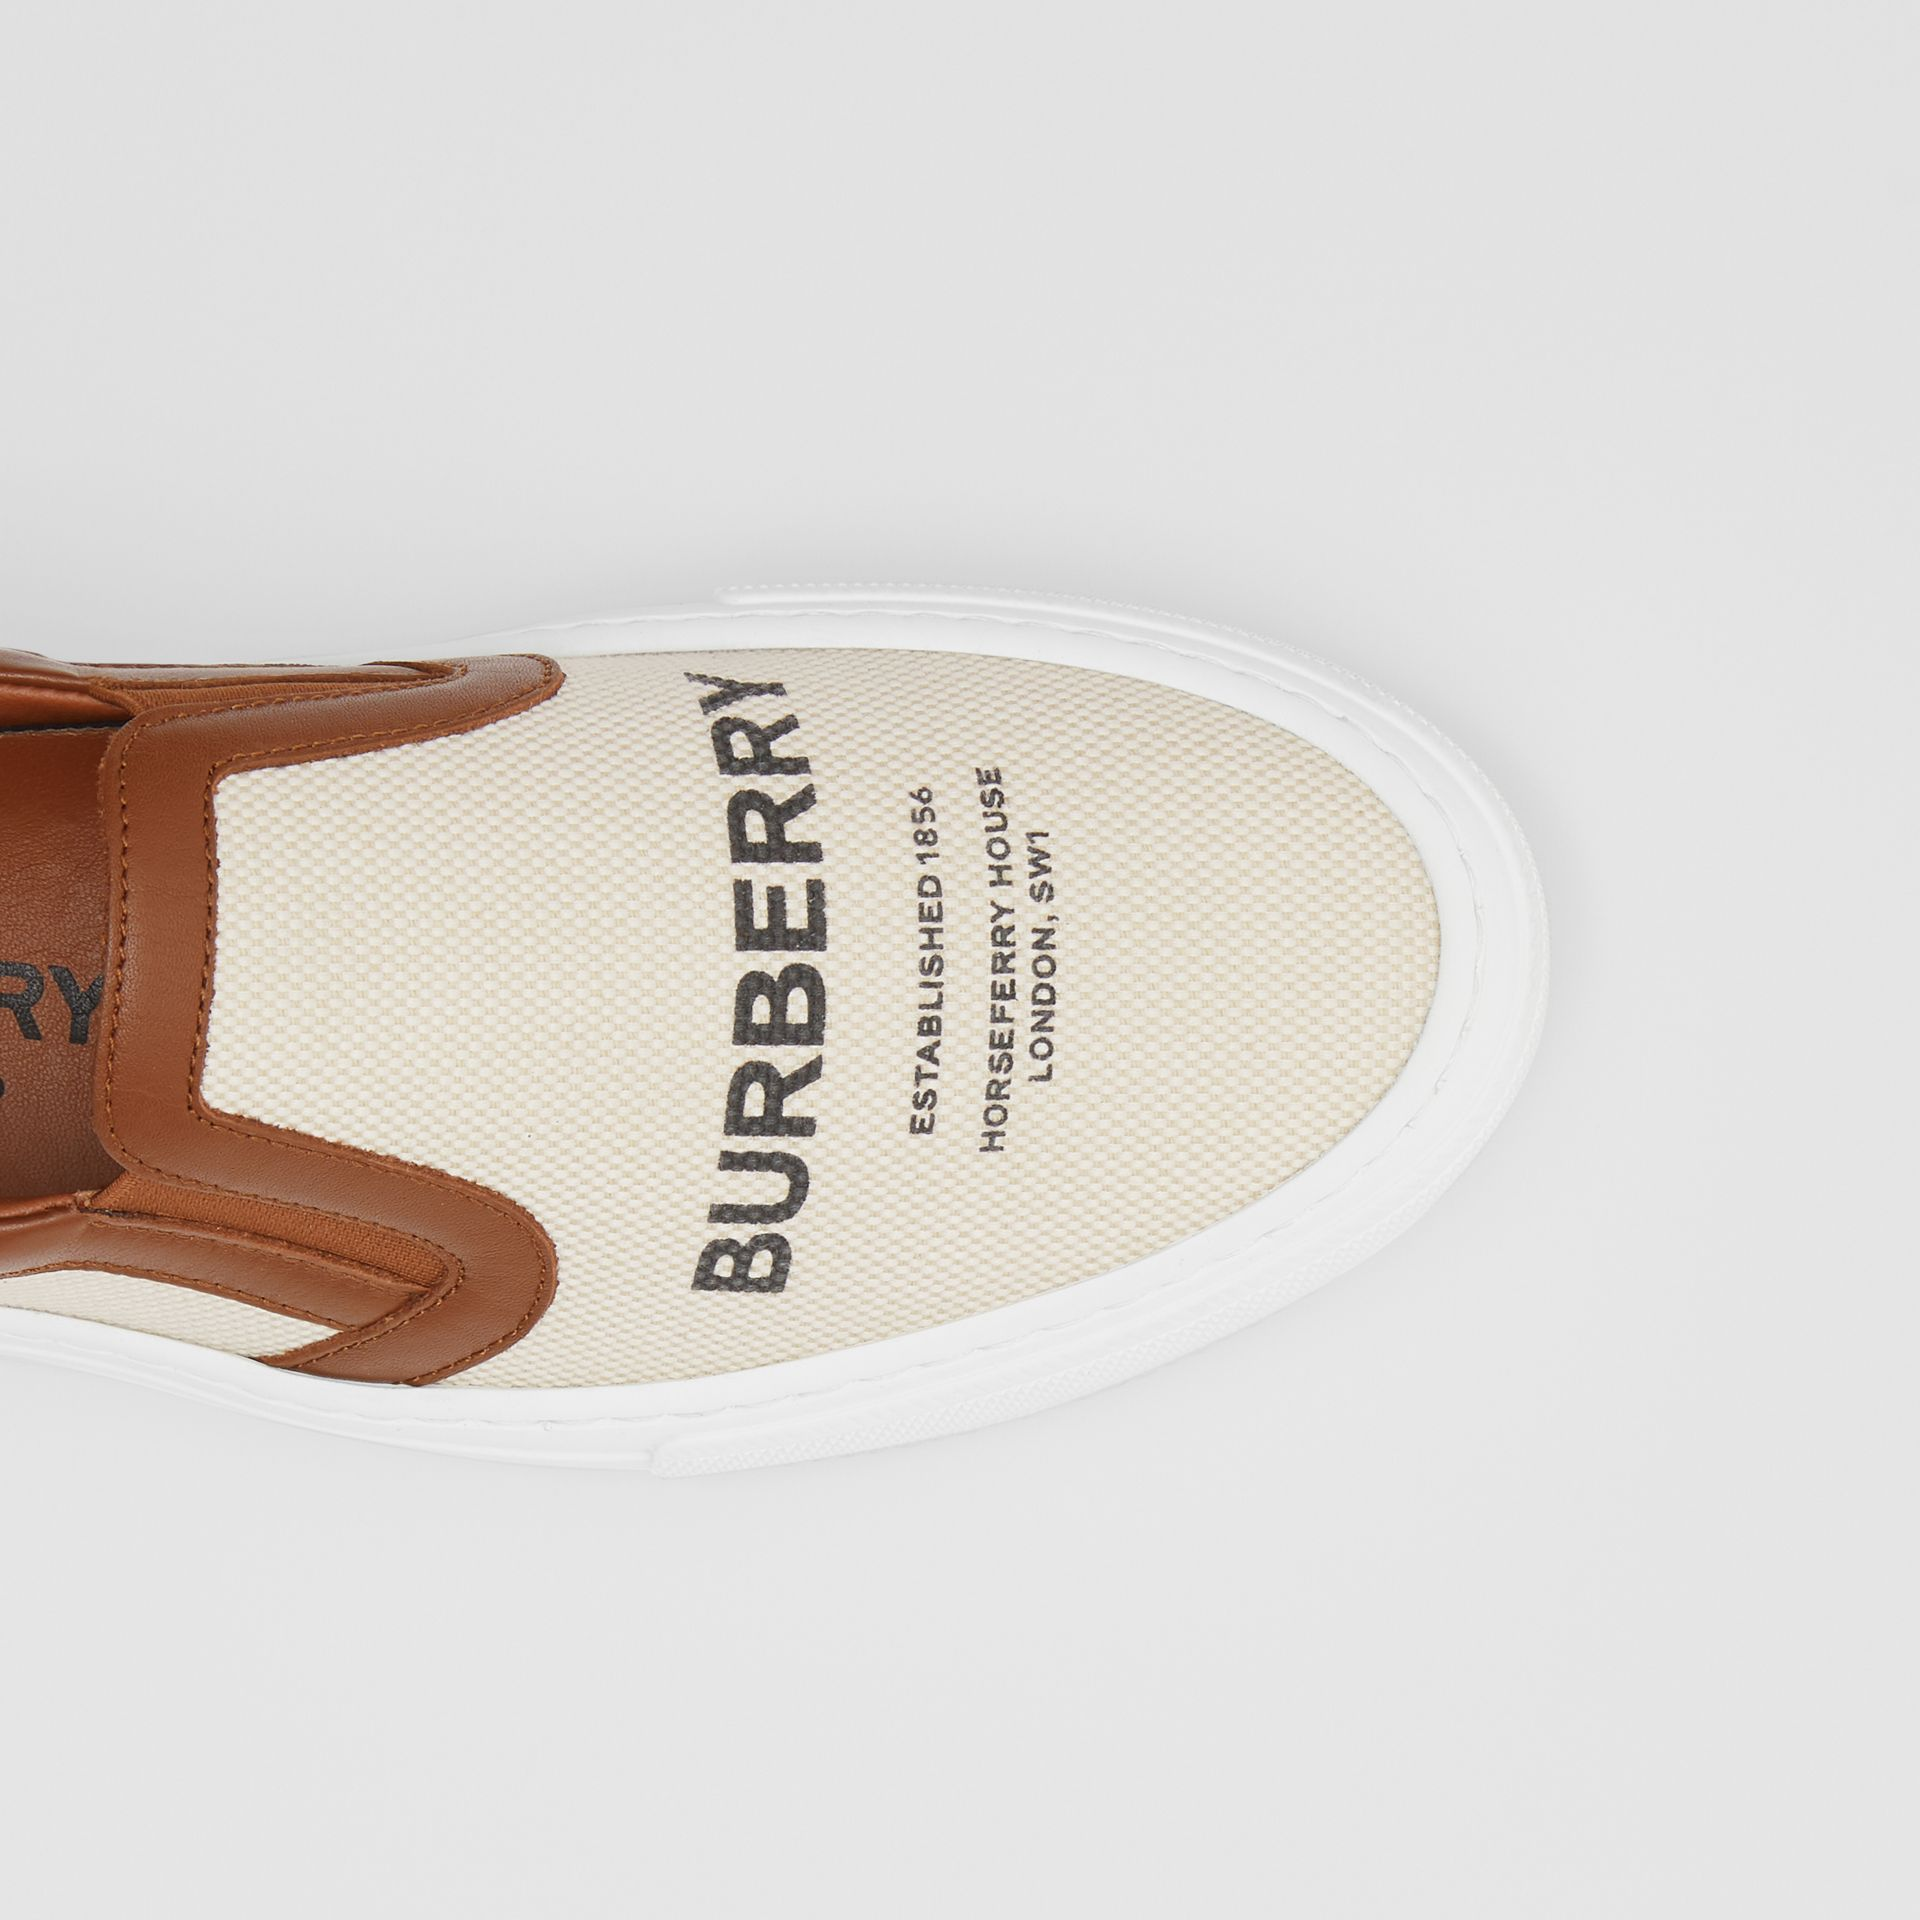 Sneakers sans lacets en coton et cuir Horseferry (Brun Malt) - Femme | Burberry - photo de la galerie 1